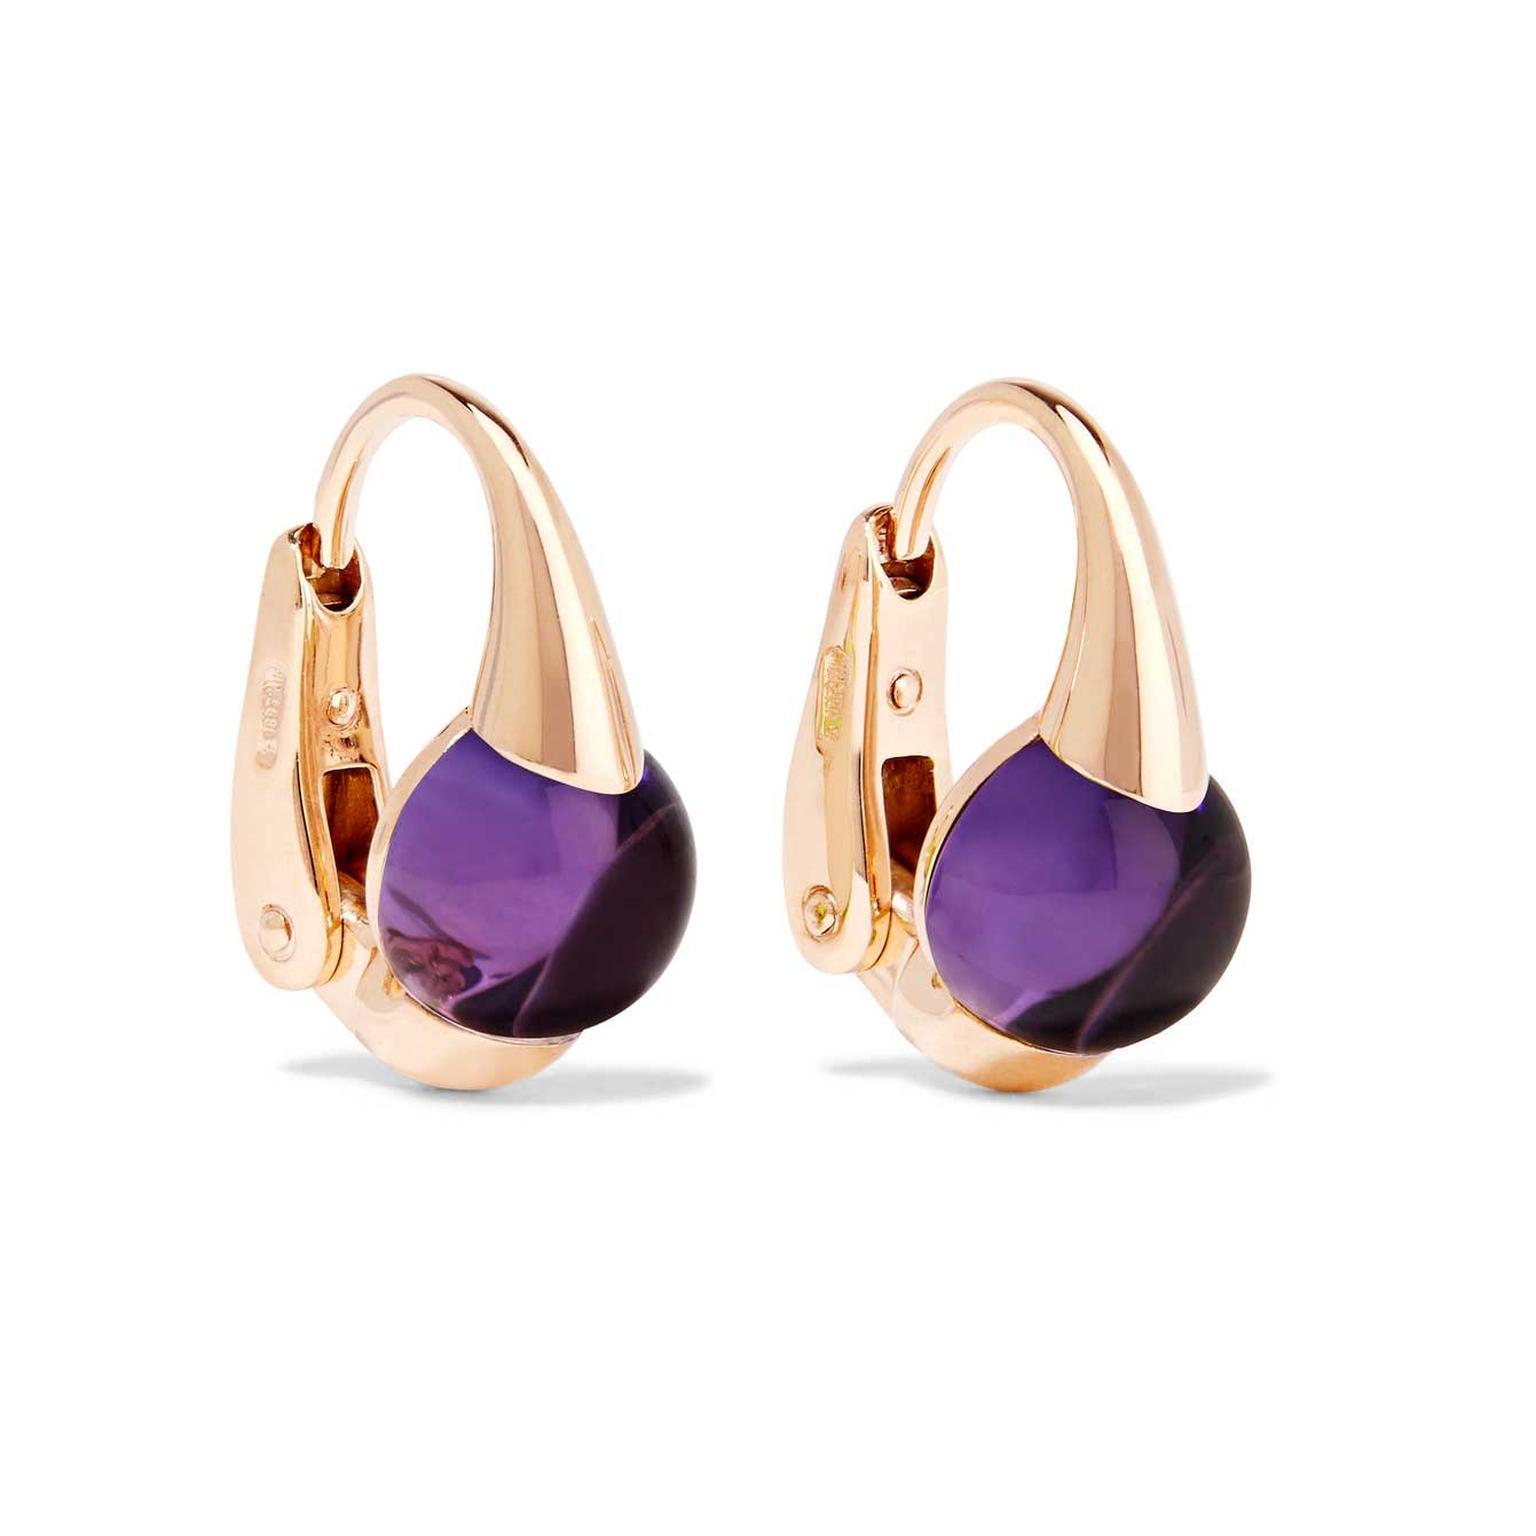 Pomellato Mama Non Mama amethyst earrings